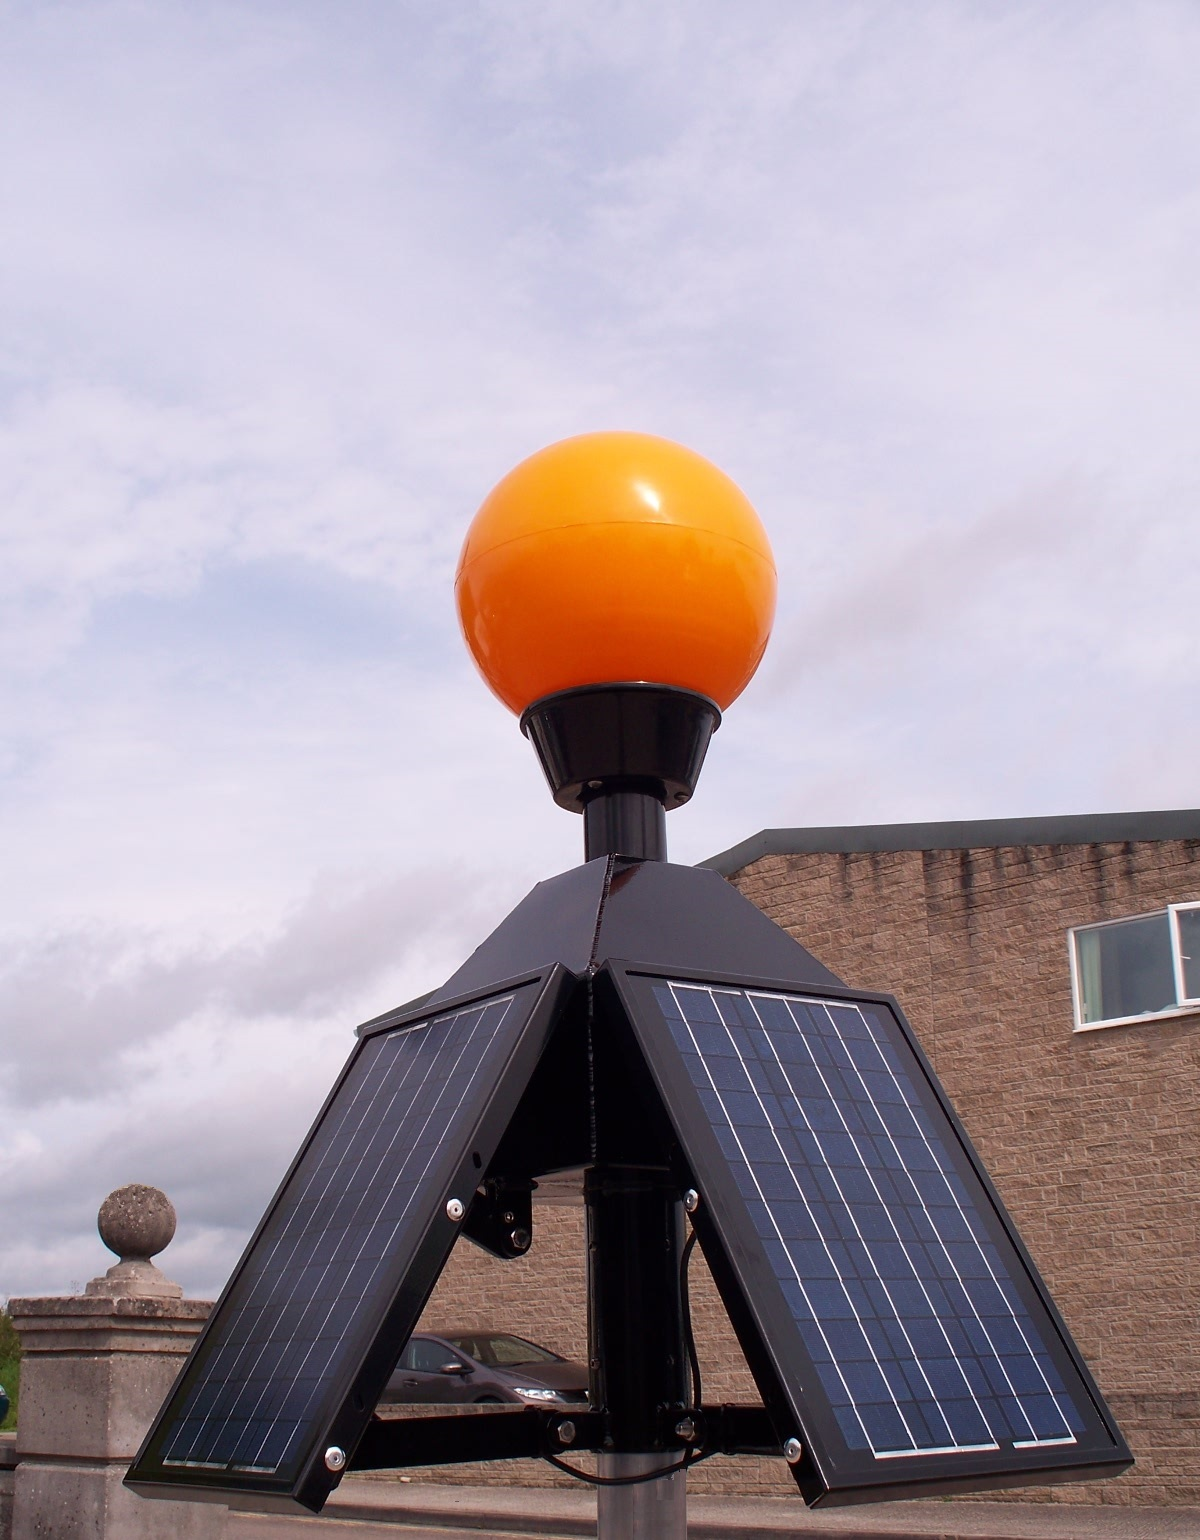 retrofit solar belisha beacon by fisher & Company